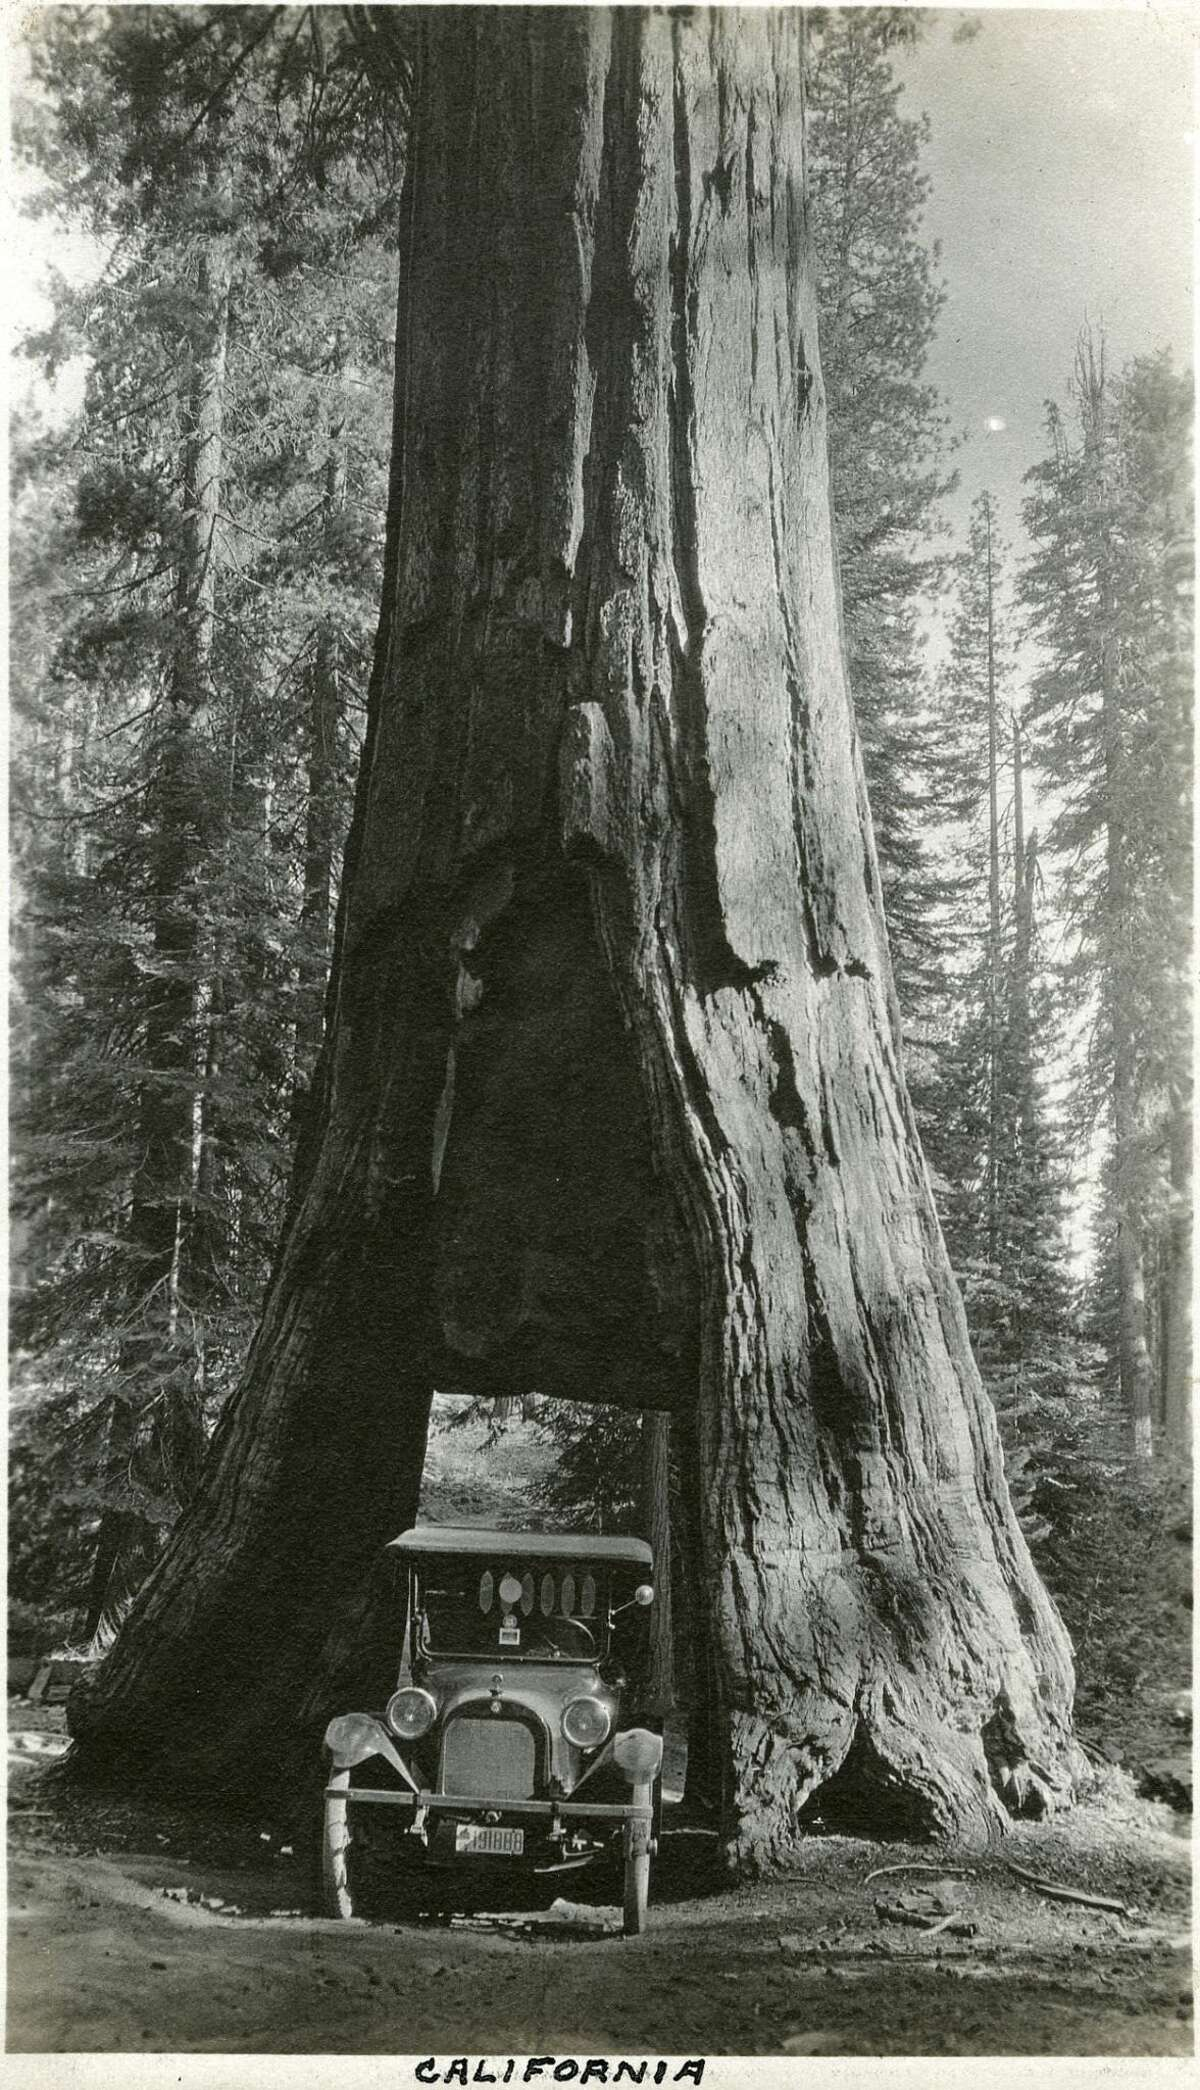 """Caption: """"California,"""" c, 1917. The McCarthy's vehicle is squeezed into the tunnel carved through the California Tree, a Giant Sequoia in the Mariposa Grove of Yosemite National Park. The tunnel was cut through the tree in 1895 to facilitate travel on the road into the grove, and also as a tourist attraction. It is now the only living Giant Sequoia with a tunnel cut through it (so-called """"tunnel trees""""), the others having all fallen. [Caption source: California State Archive]"""